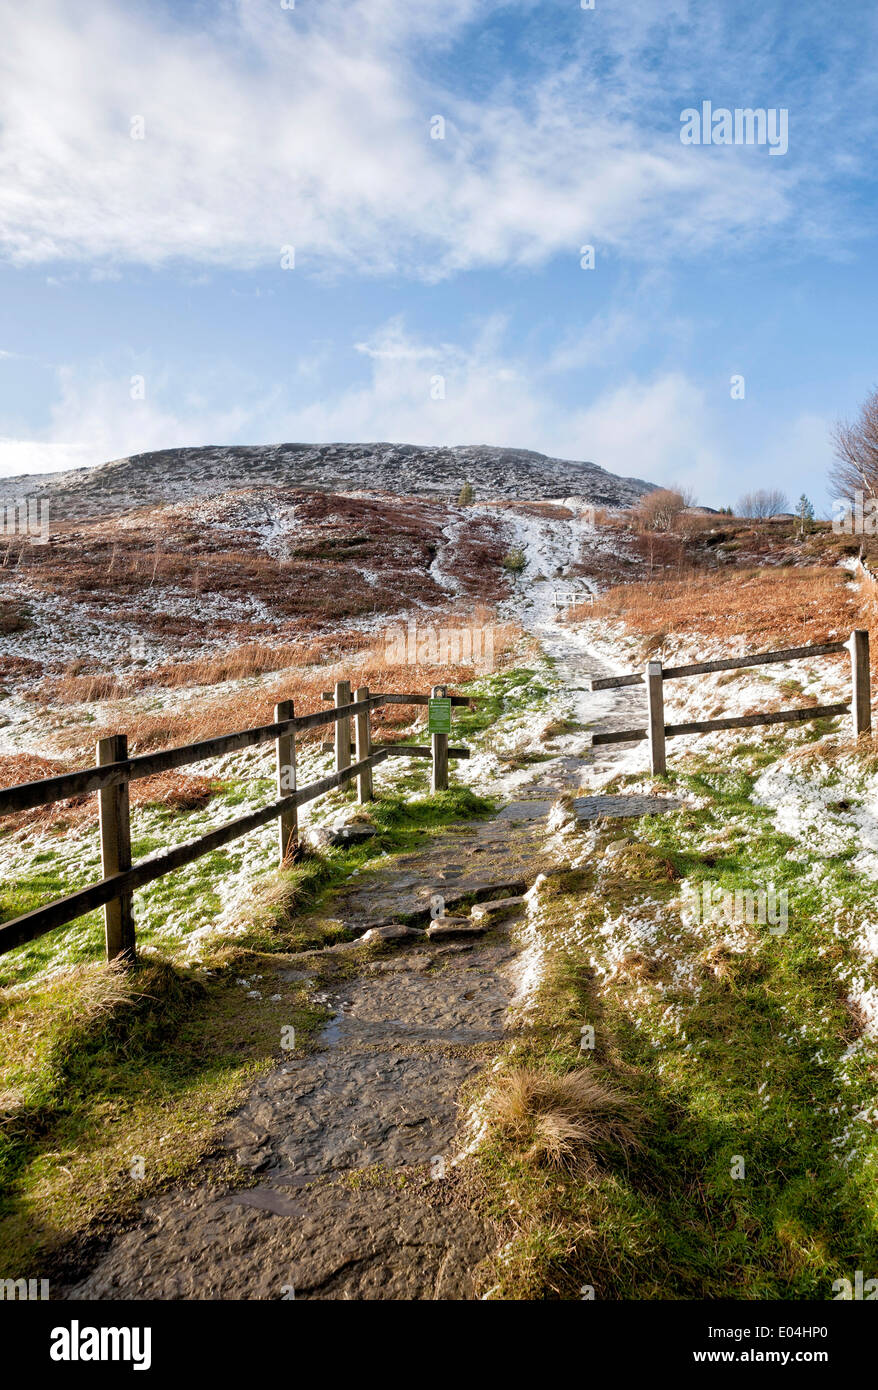 The first snow of the year at Hasty Bank, near Stokesley - Stock Image